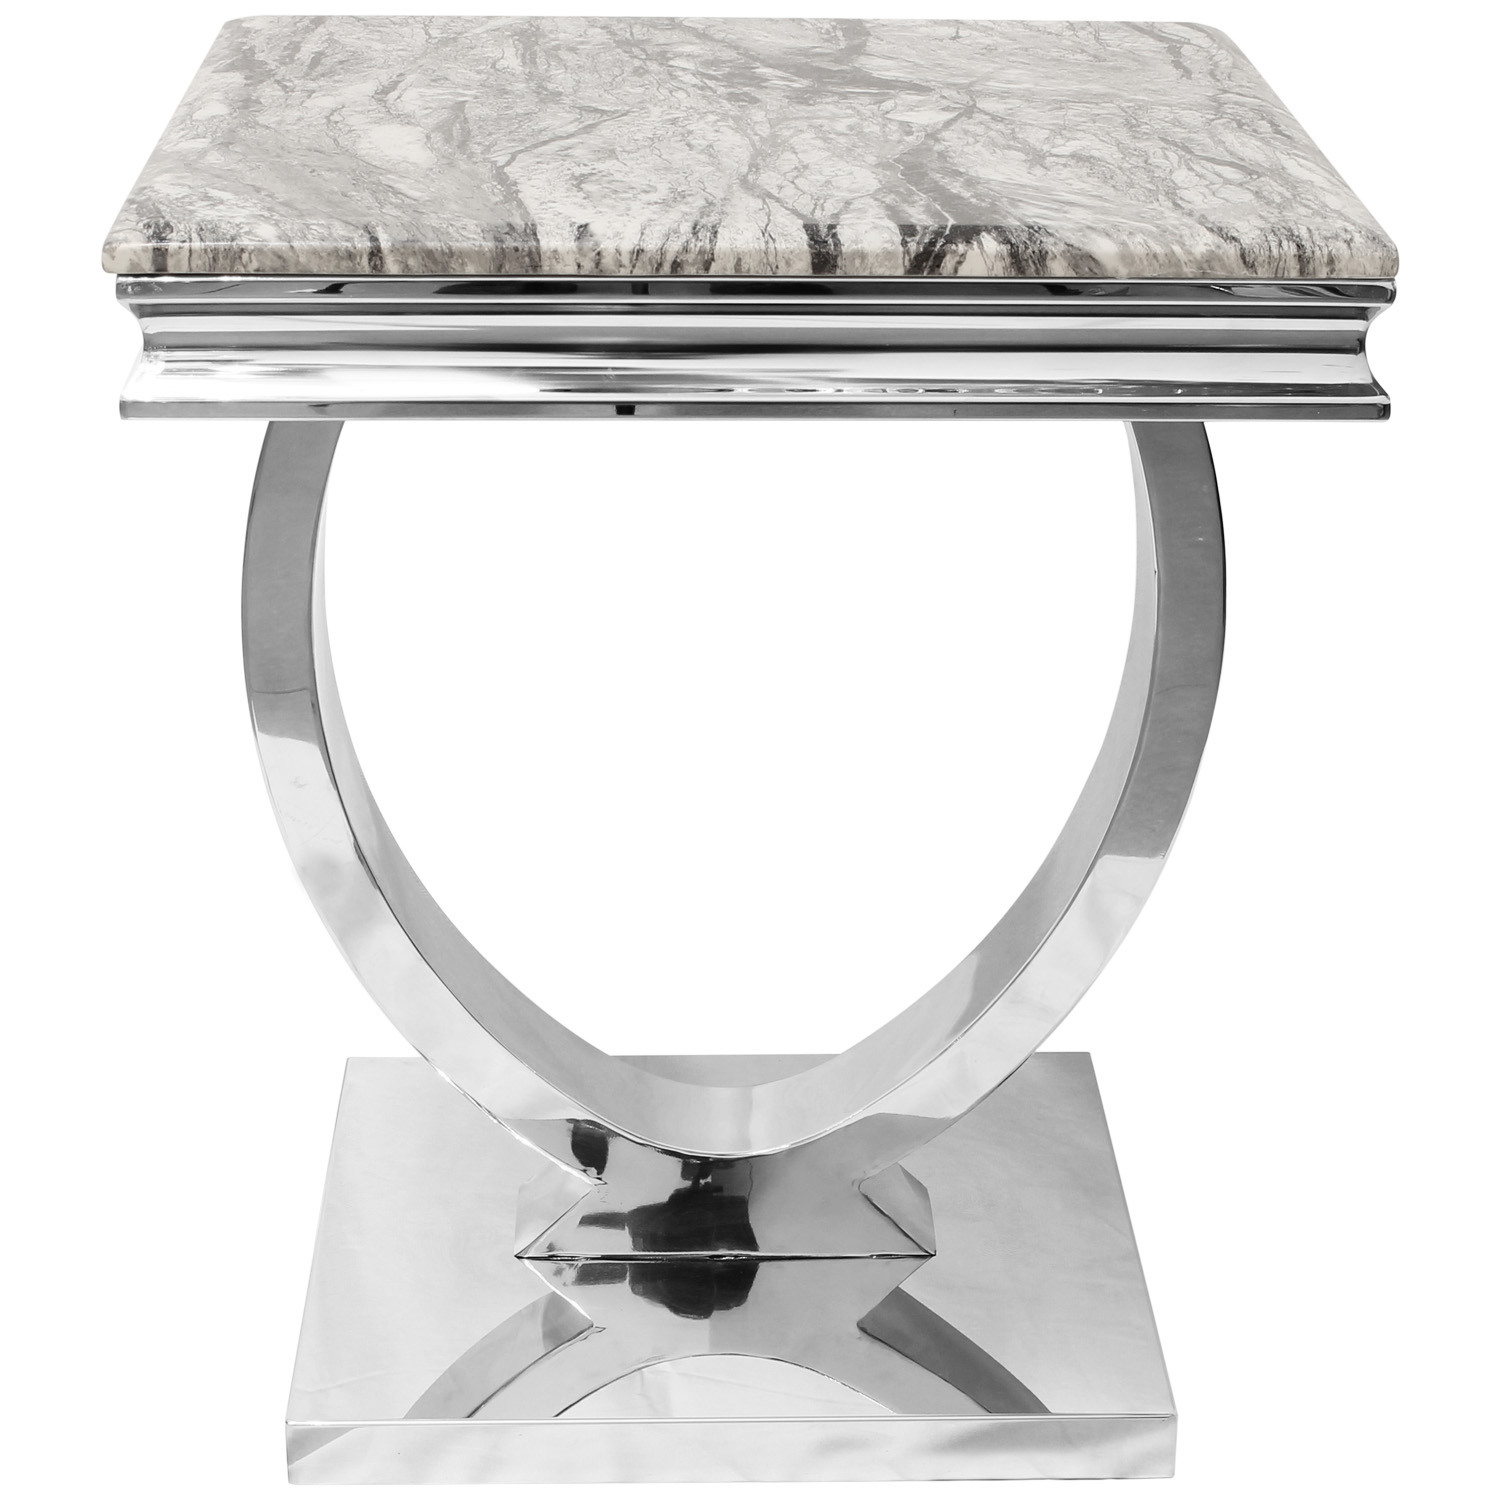 Modern Stainless Steel Side End Table Grey Marble Top Sofa Living